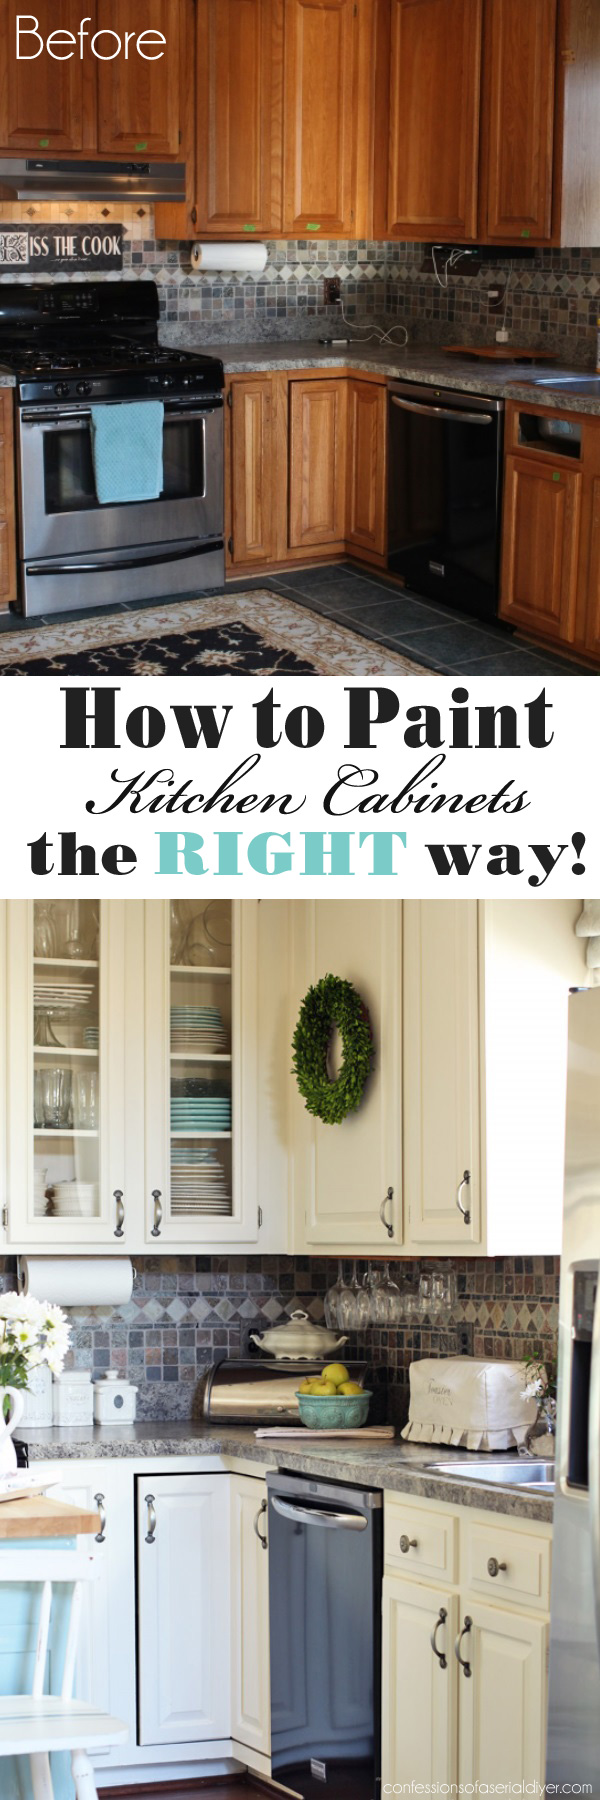 How to Paint Kitchen Cabinets the RIGHT way from Confessions of a Serial Do-it